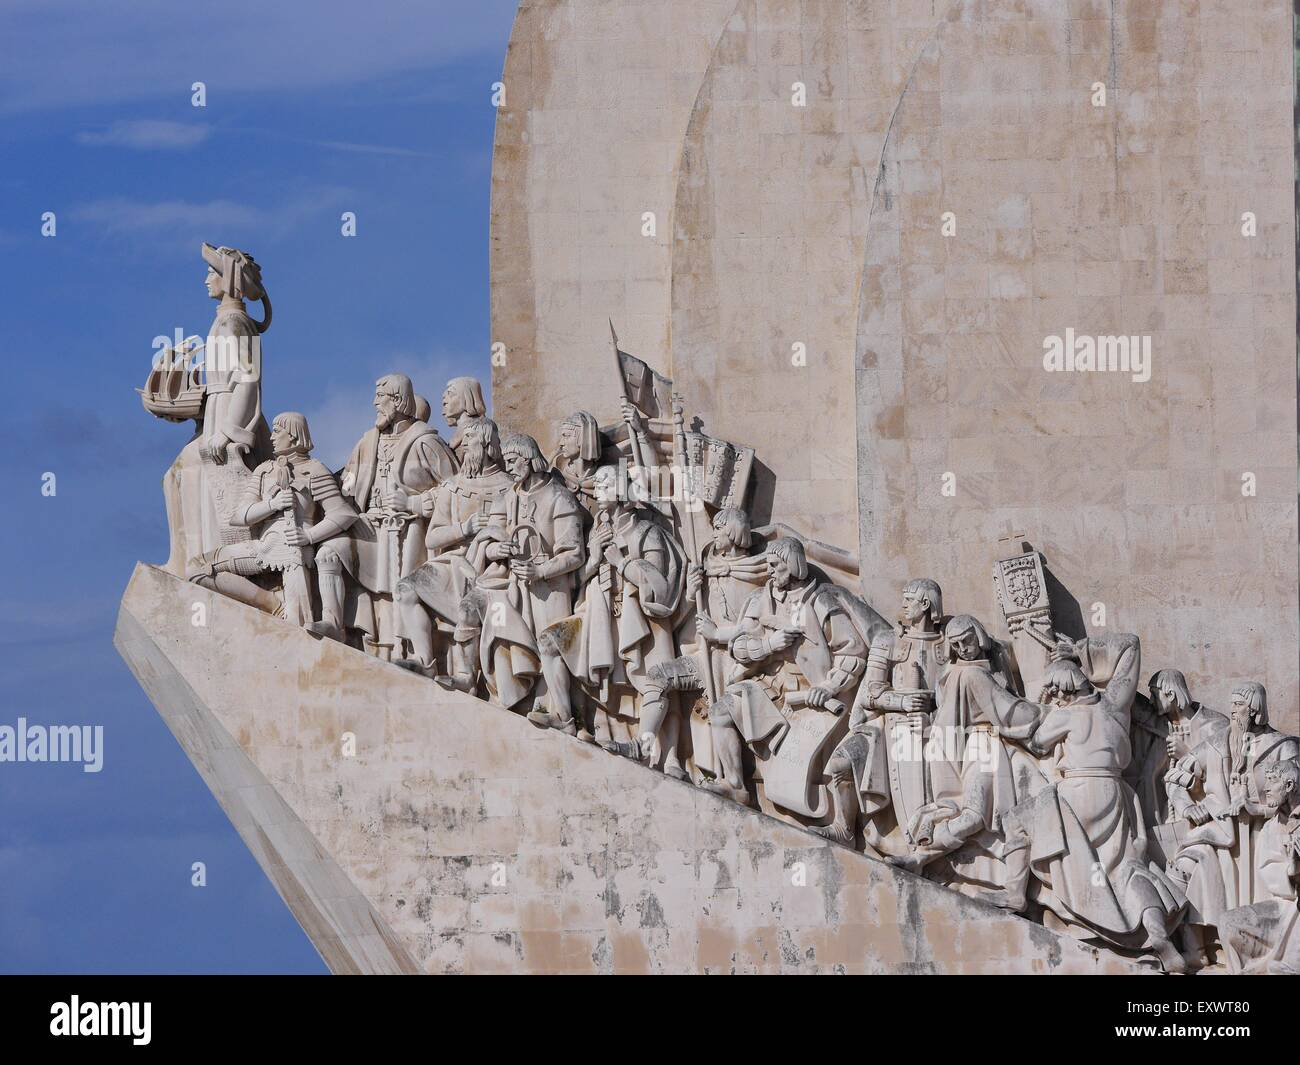 Monument of the Discoveries, Belem, Lisbon, Portugal, Europe - Stock Image